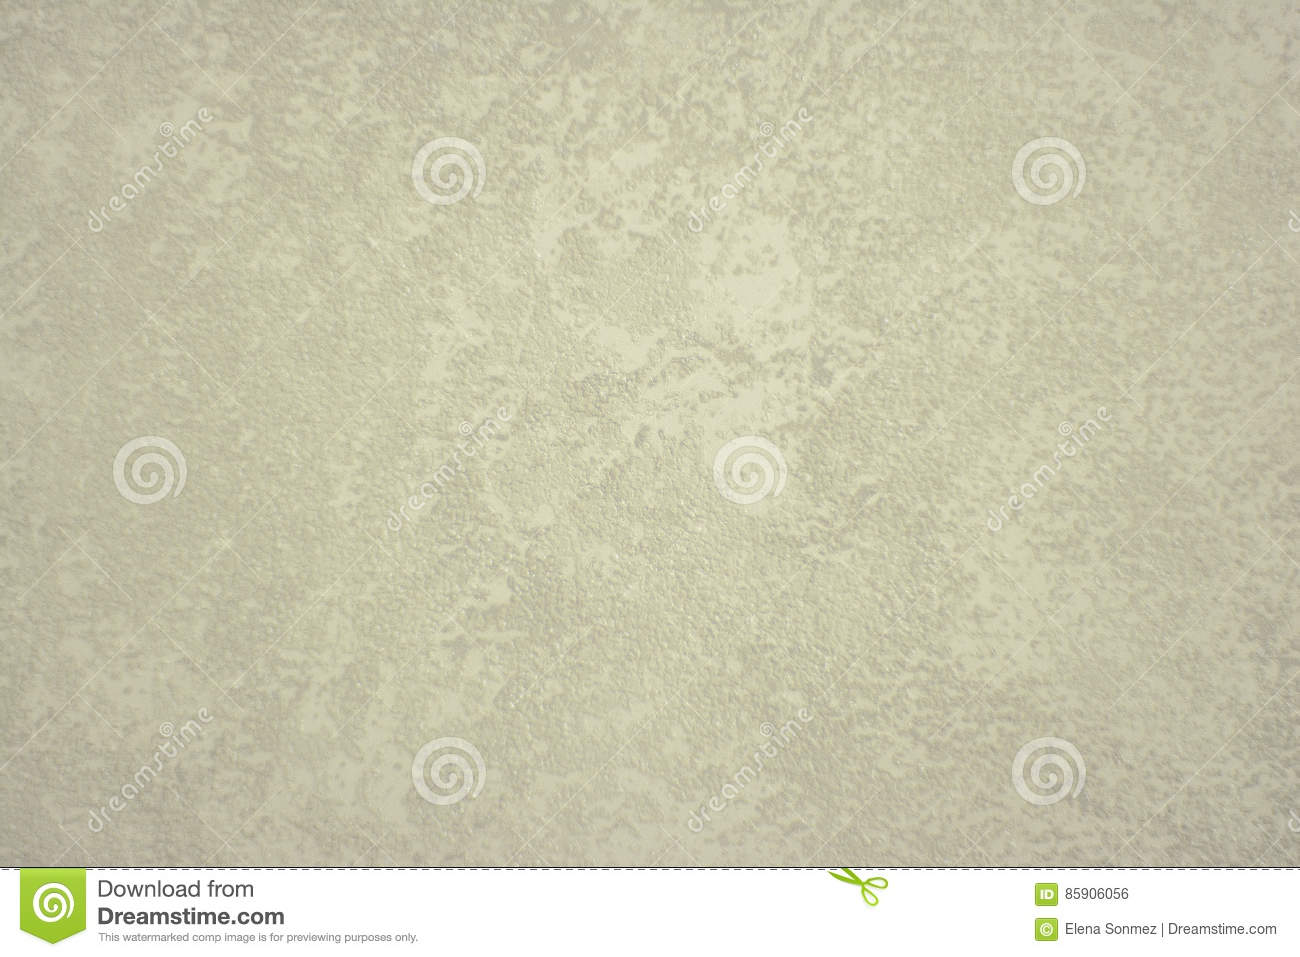 gray white background texture light plain paper with abstract